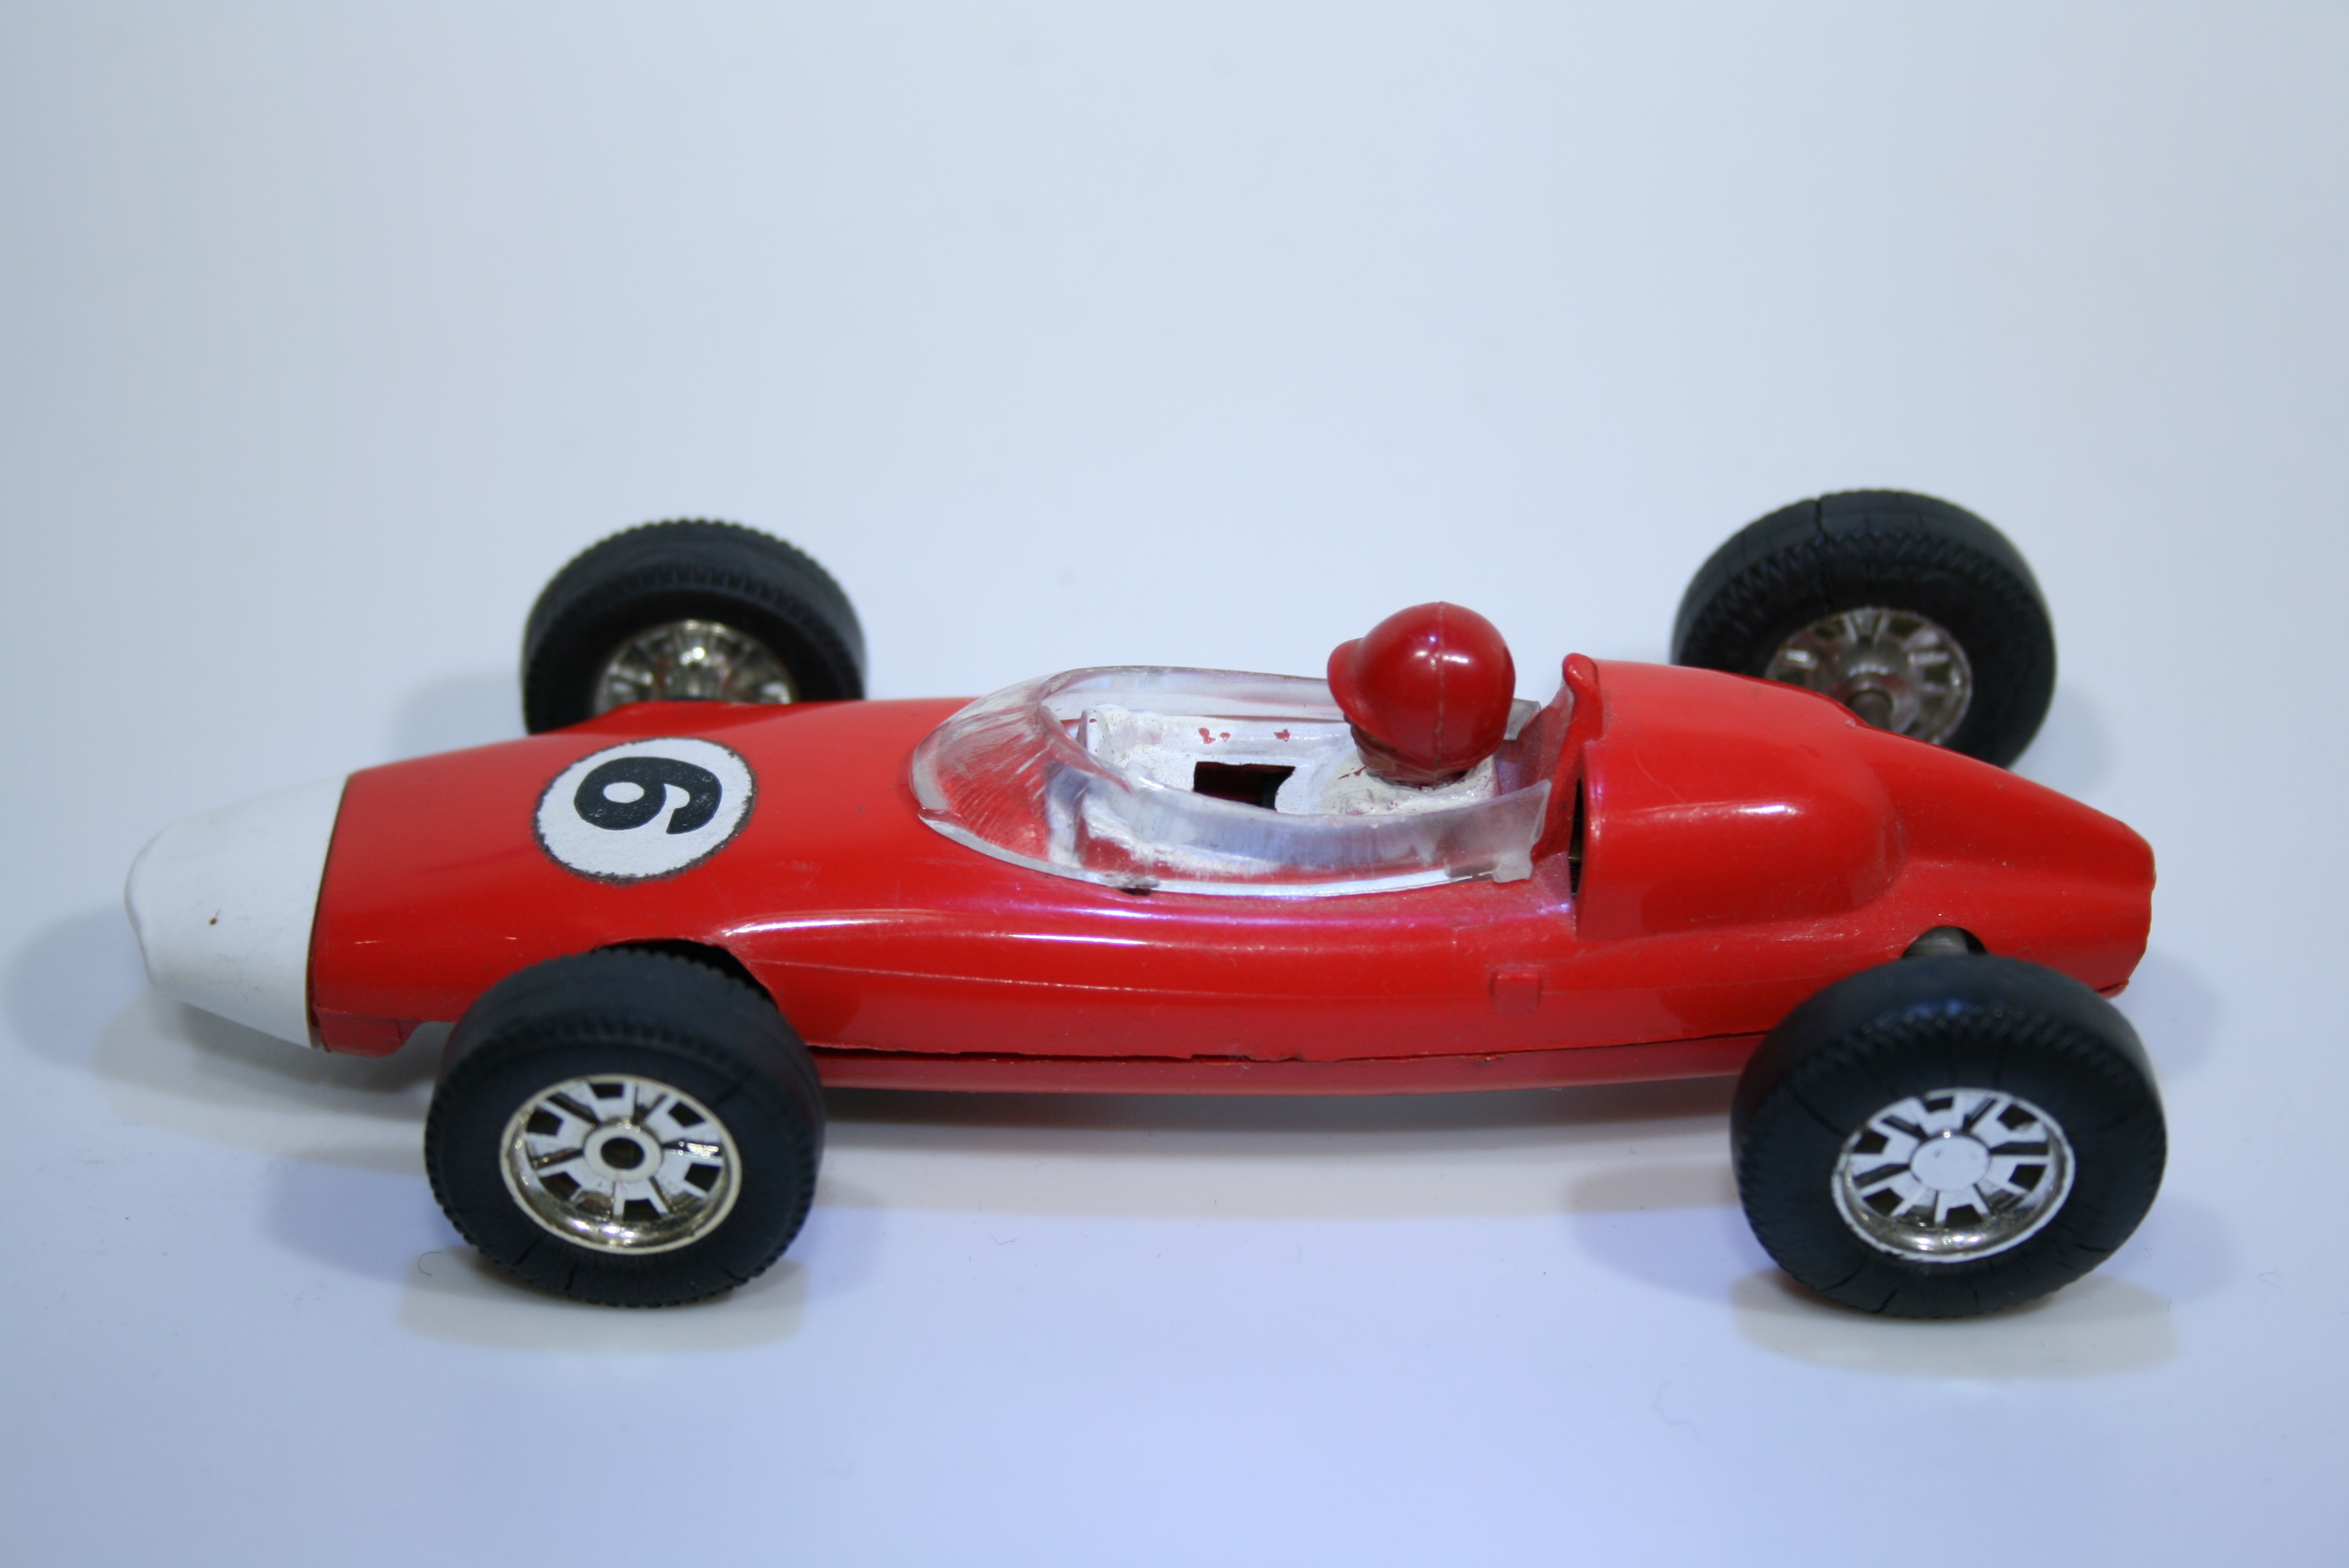 956 BRM P48 Climax 1960-61 G Hill Scalextric C86 1966-67